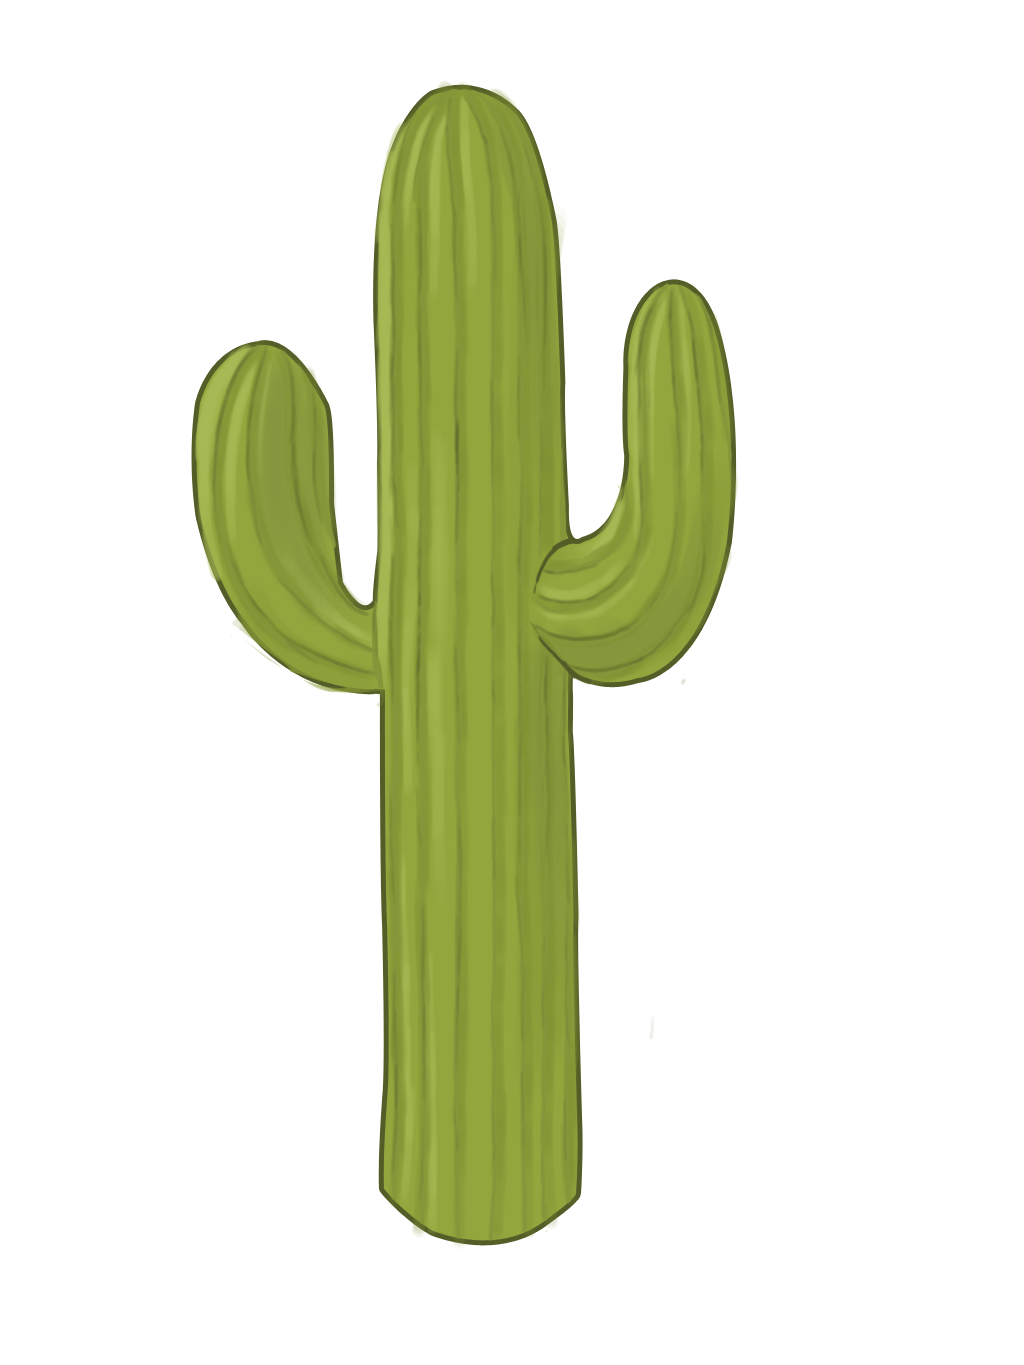 cactus png clipart download 24282 free icons and png